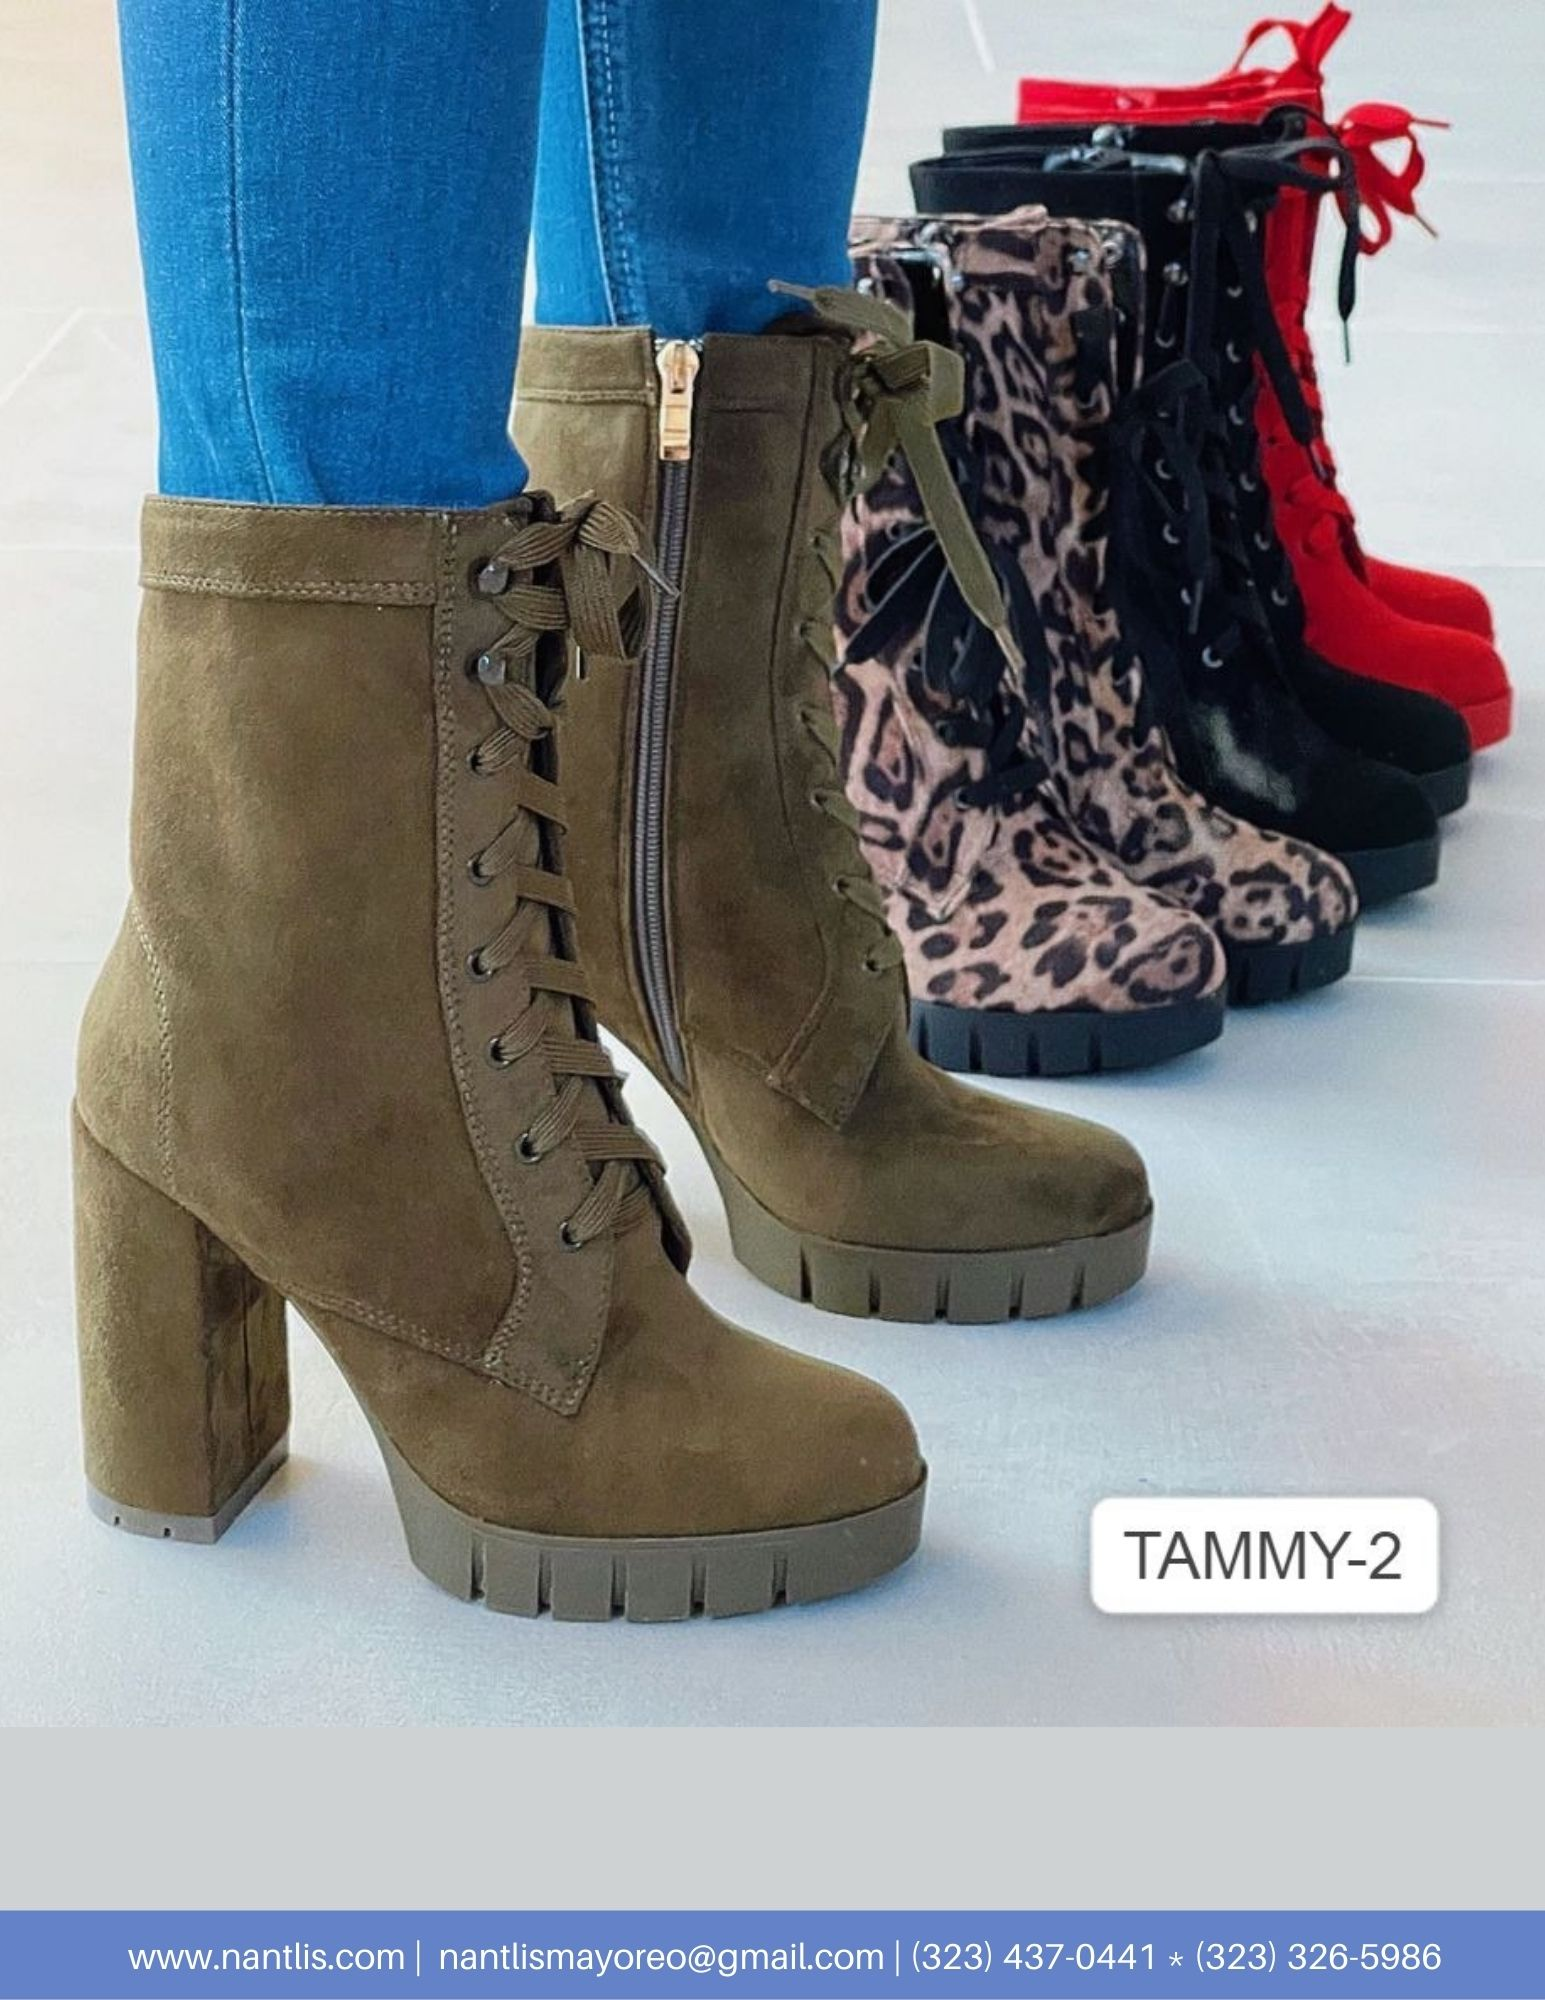 Nantlis Vol AN22 Botas Mujer mayoreo Catalogo Wholesale boots for women page 12